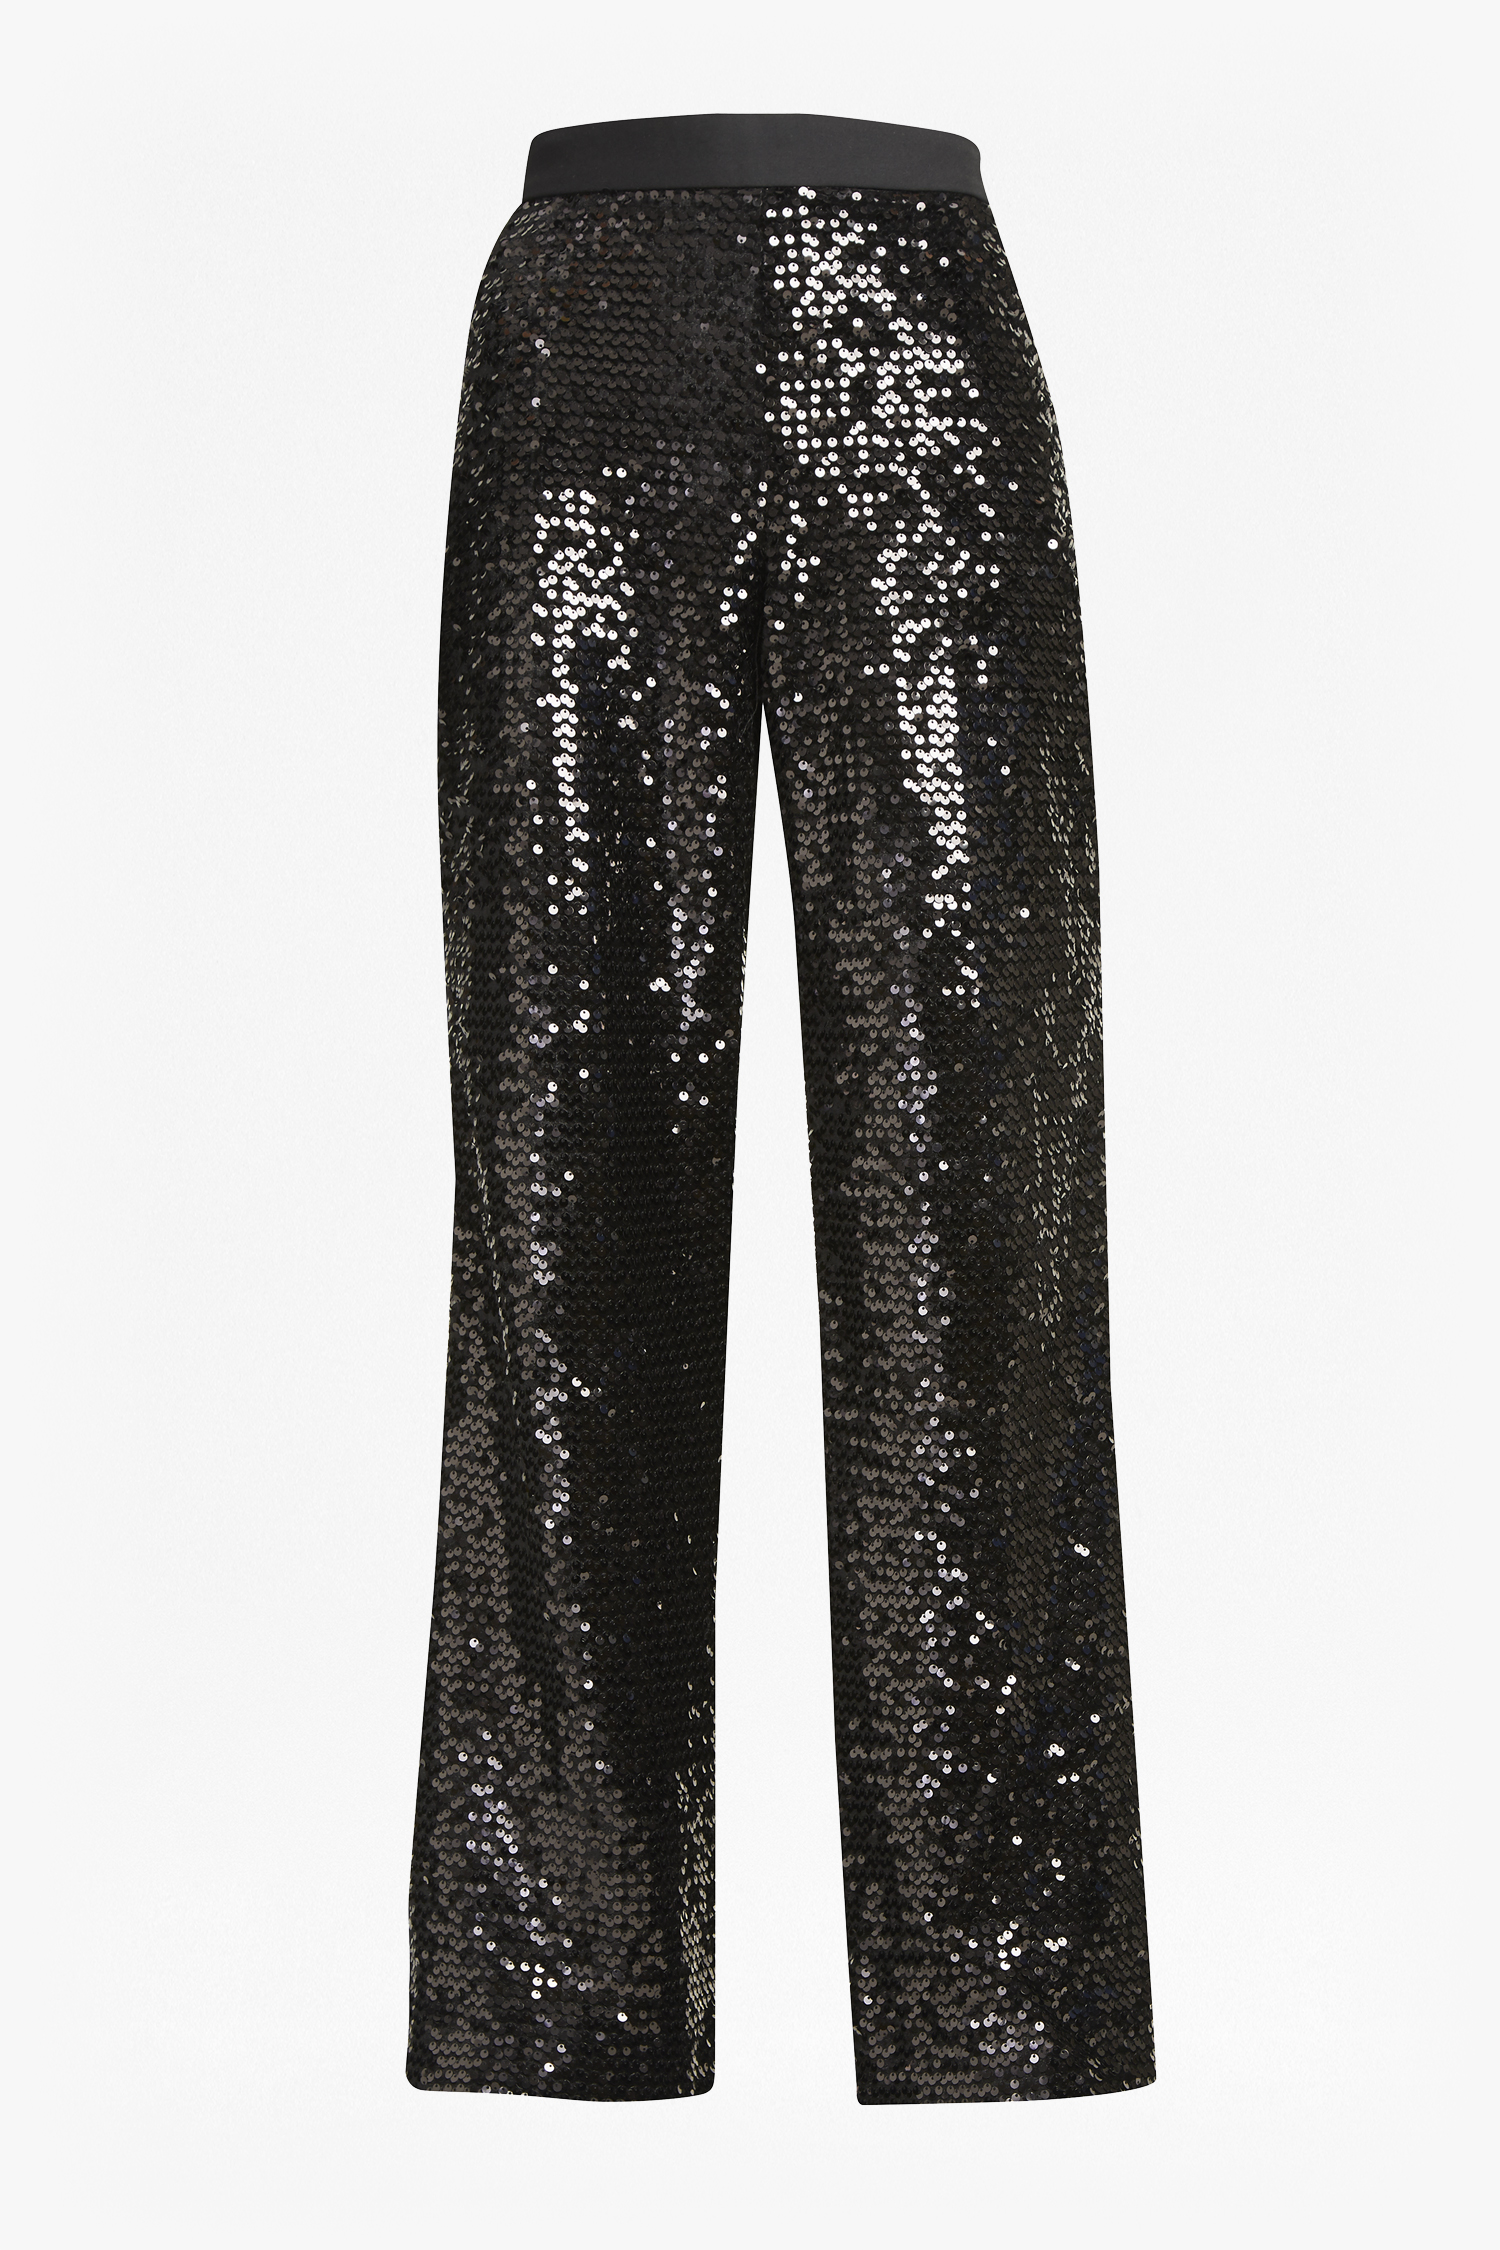 Alodia Sequin Flared Trousers - black